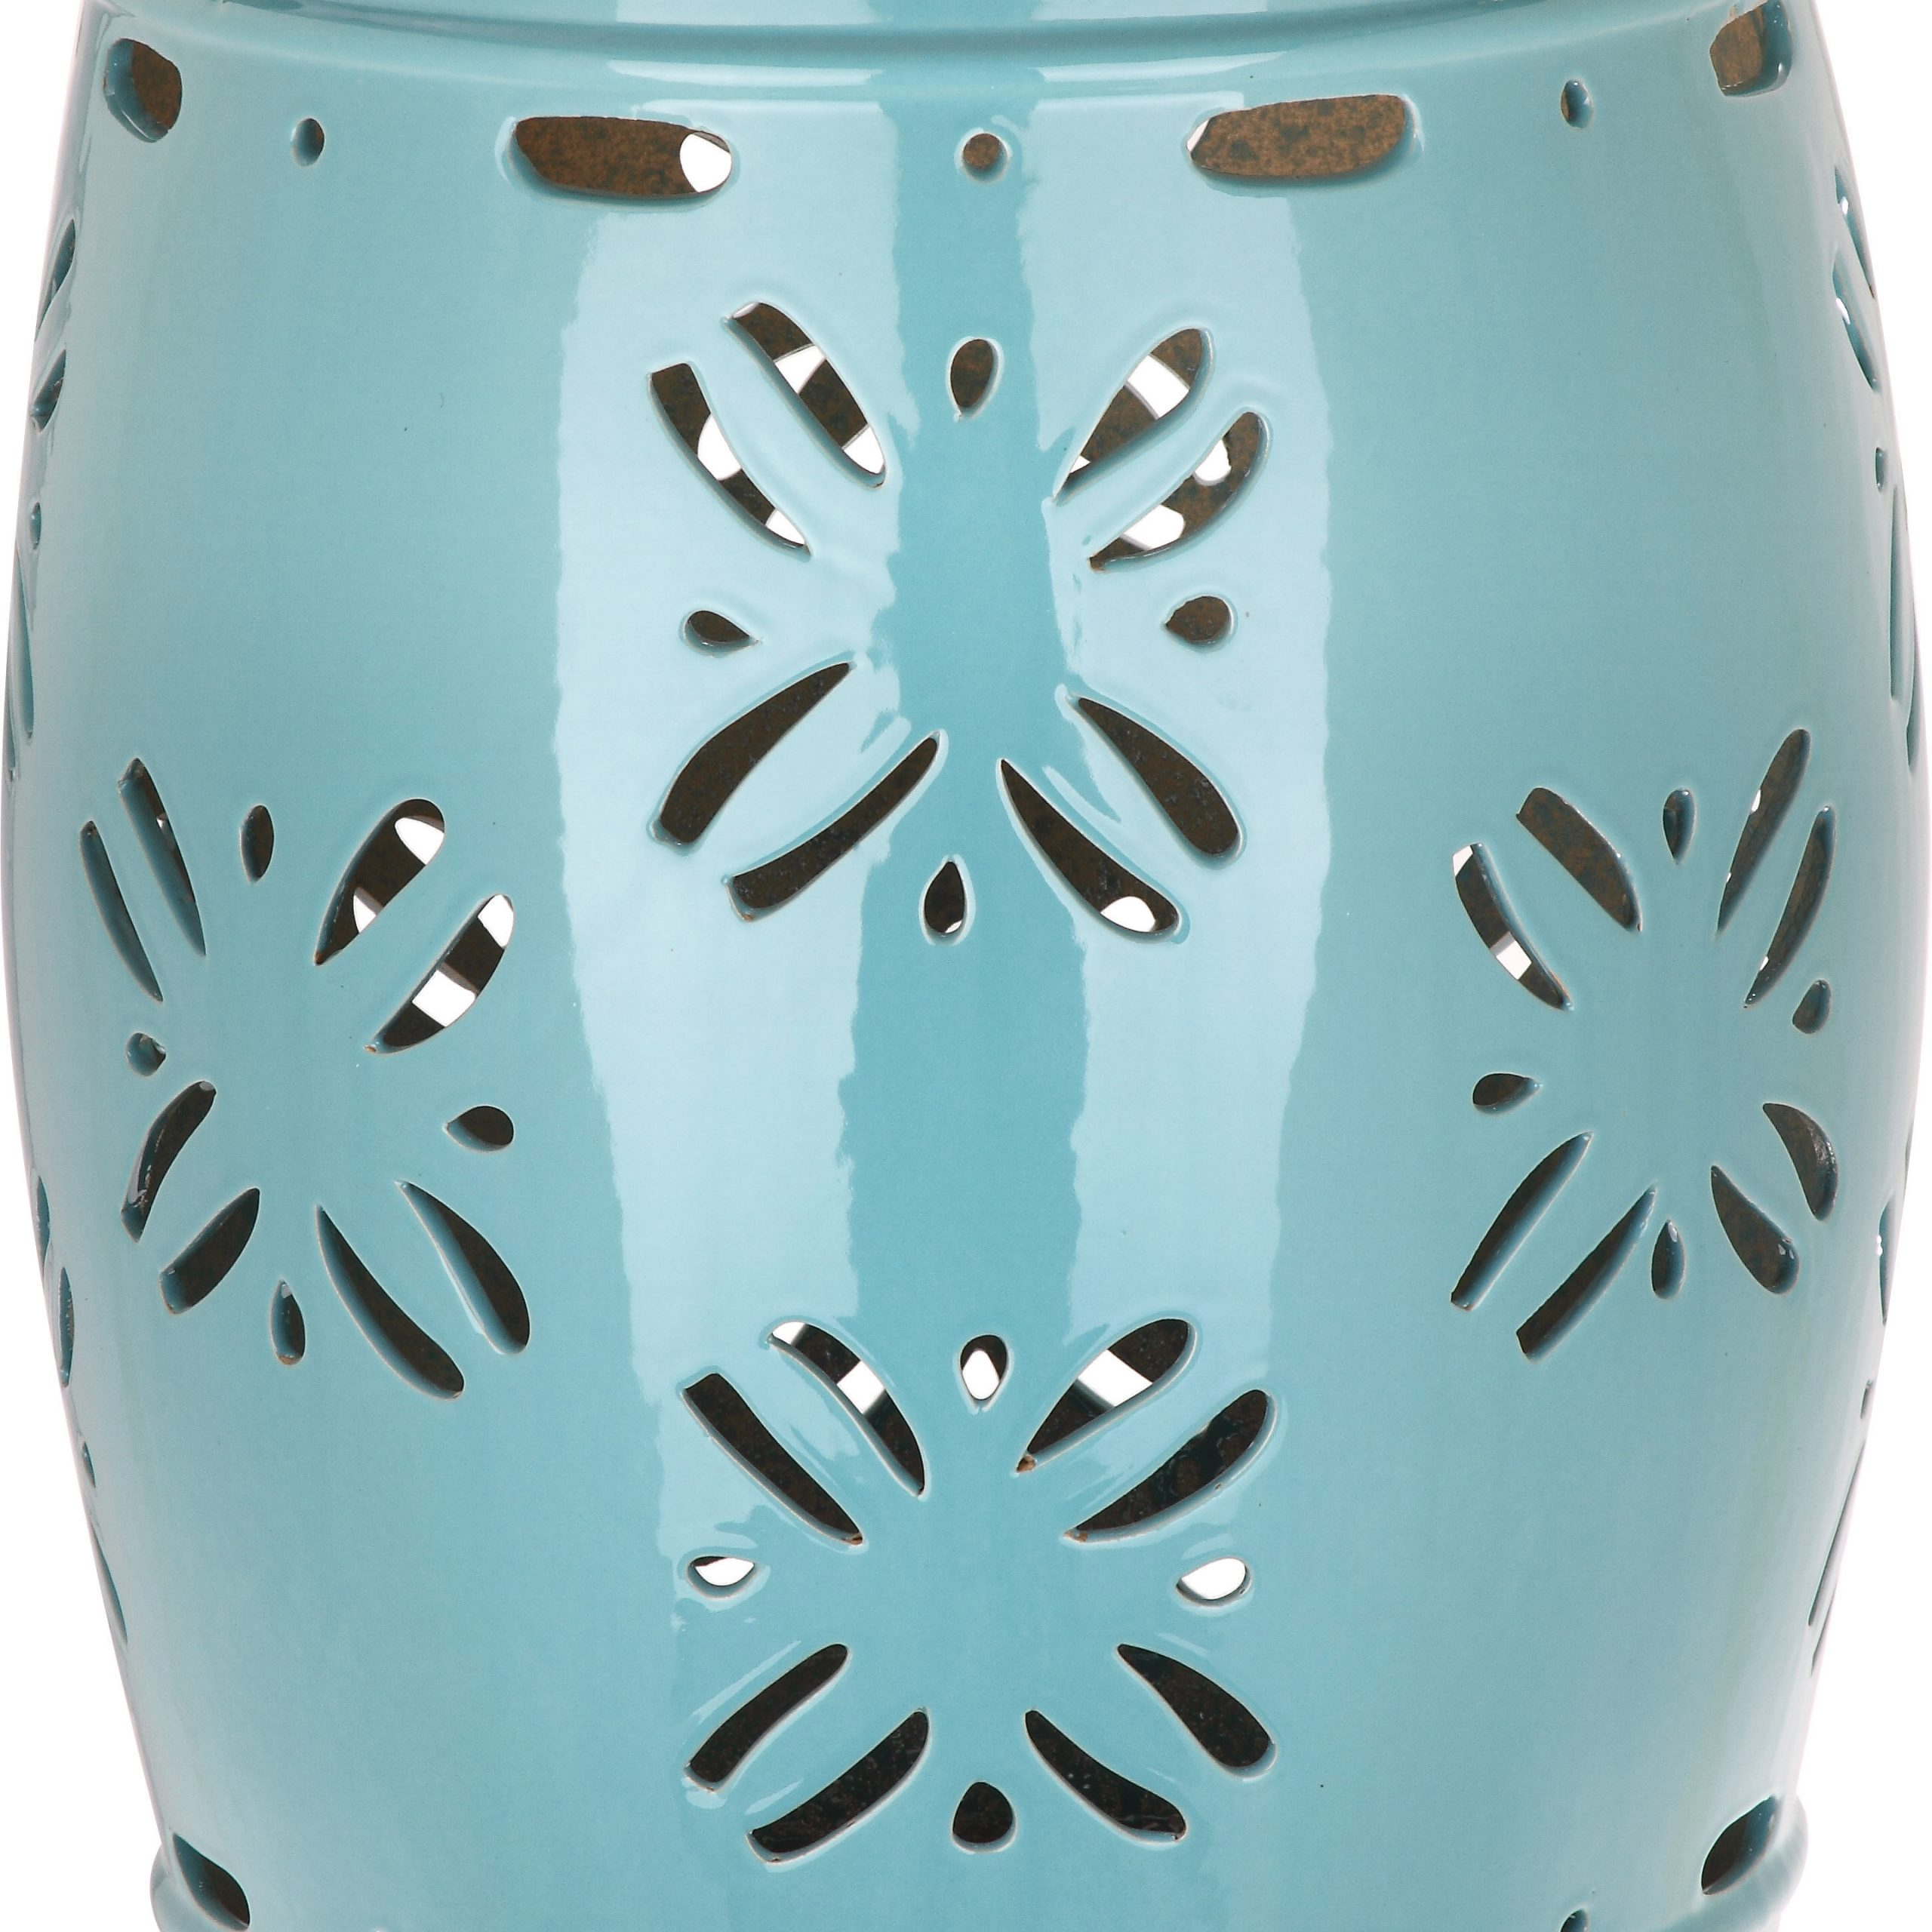 Swanson Ceramic Garden Stools Pertaining To Most Current Garden Stools (View 7 of 30)